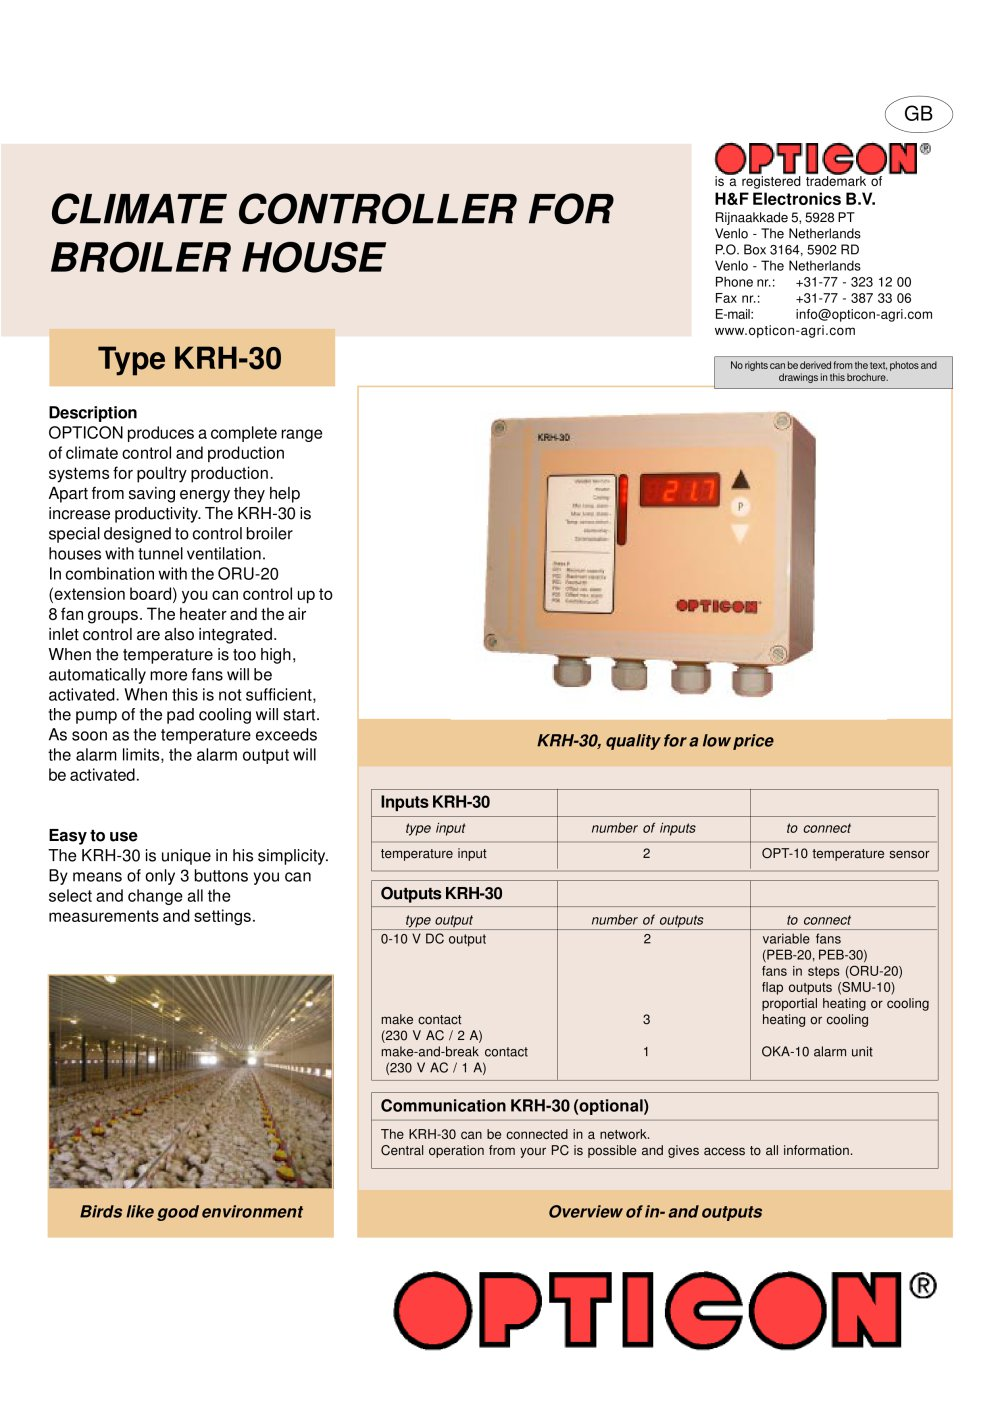 Ventilation system poultry breeder house north ireland opticon agri - Climate Controller For Broiler House 1 2 Pages